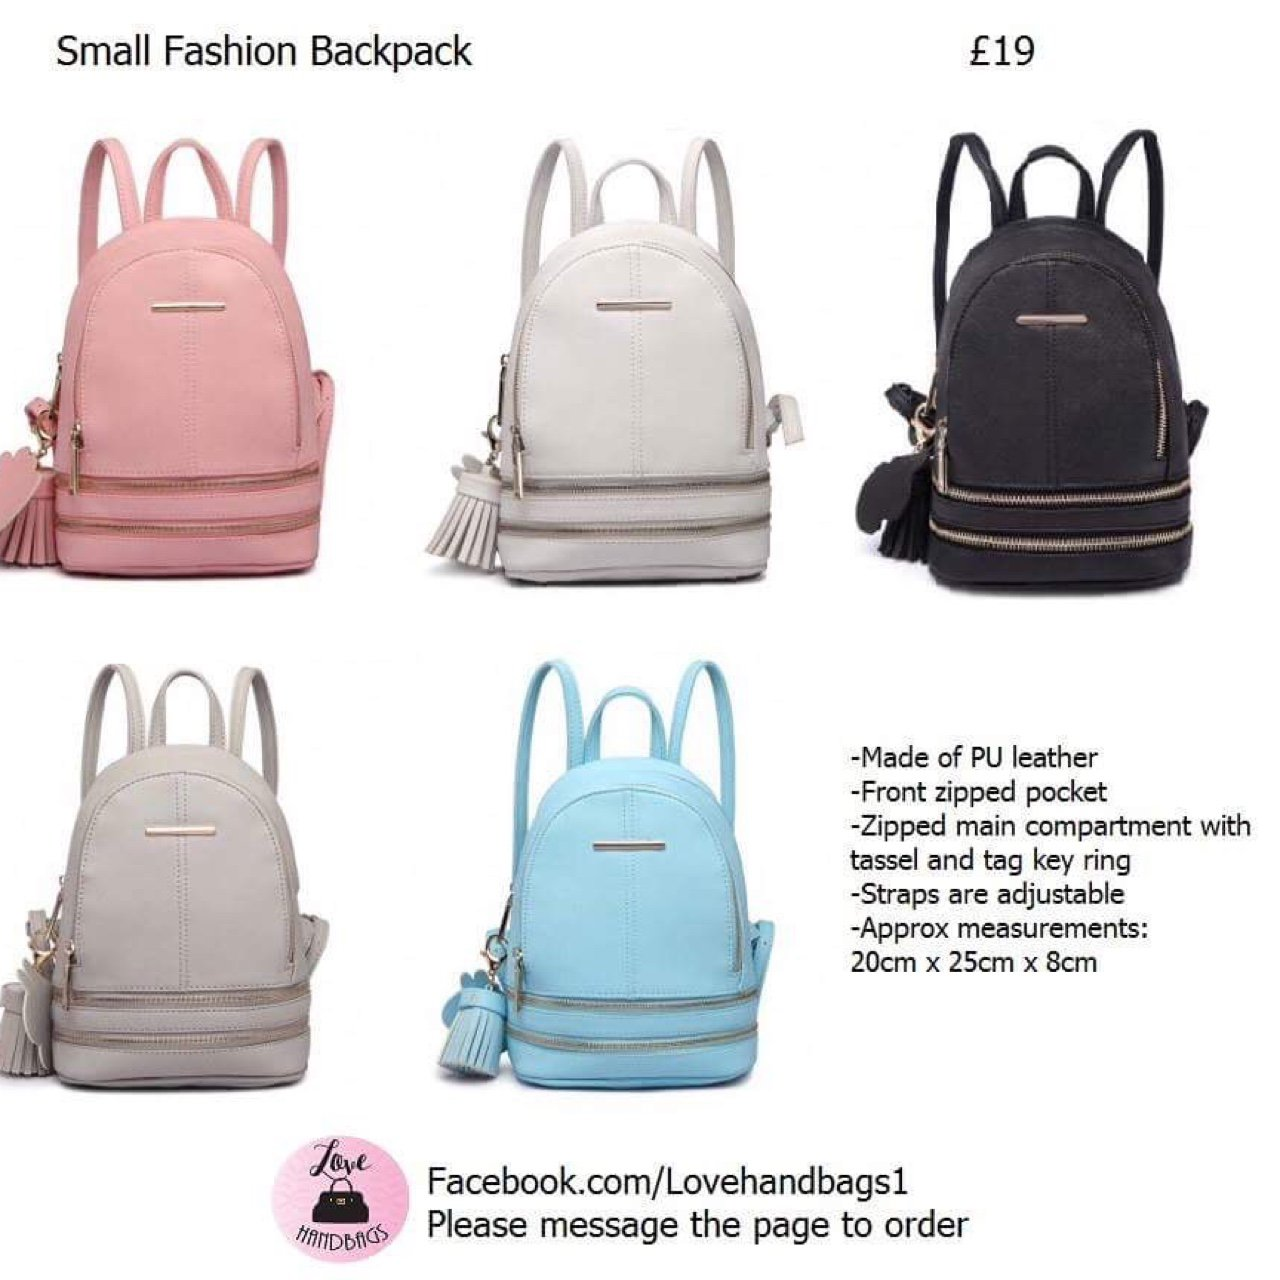 149b6f1dbd4c New colours available!! Small fashion backpacks £19 plus or - Depop